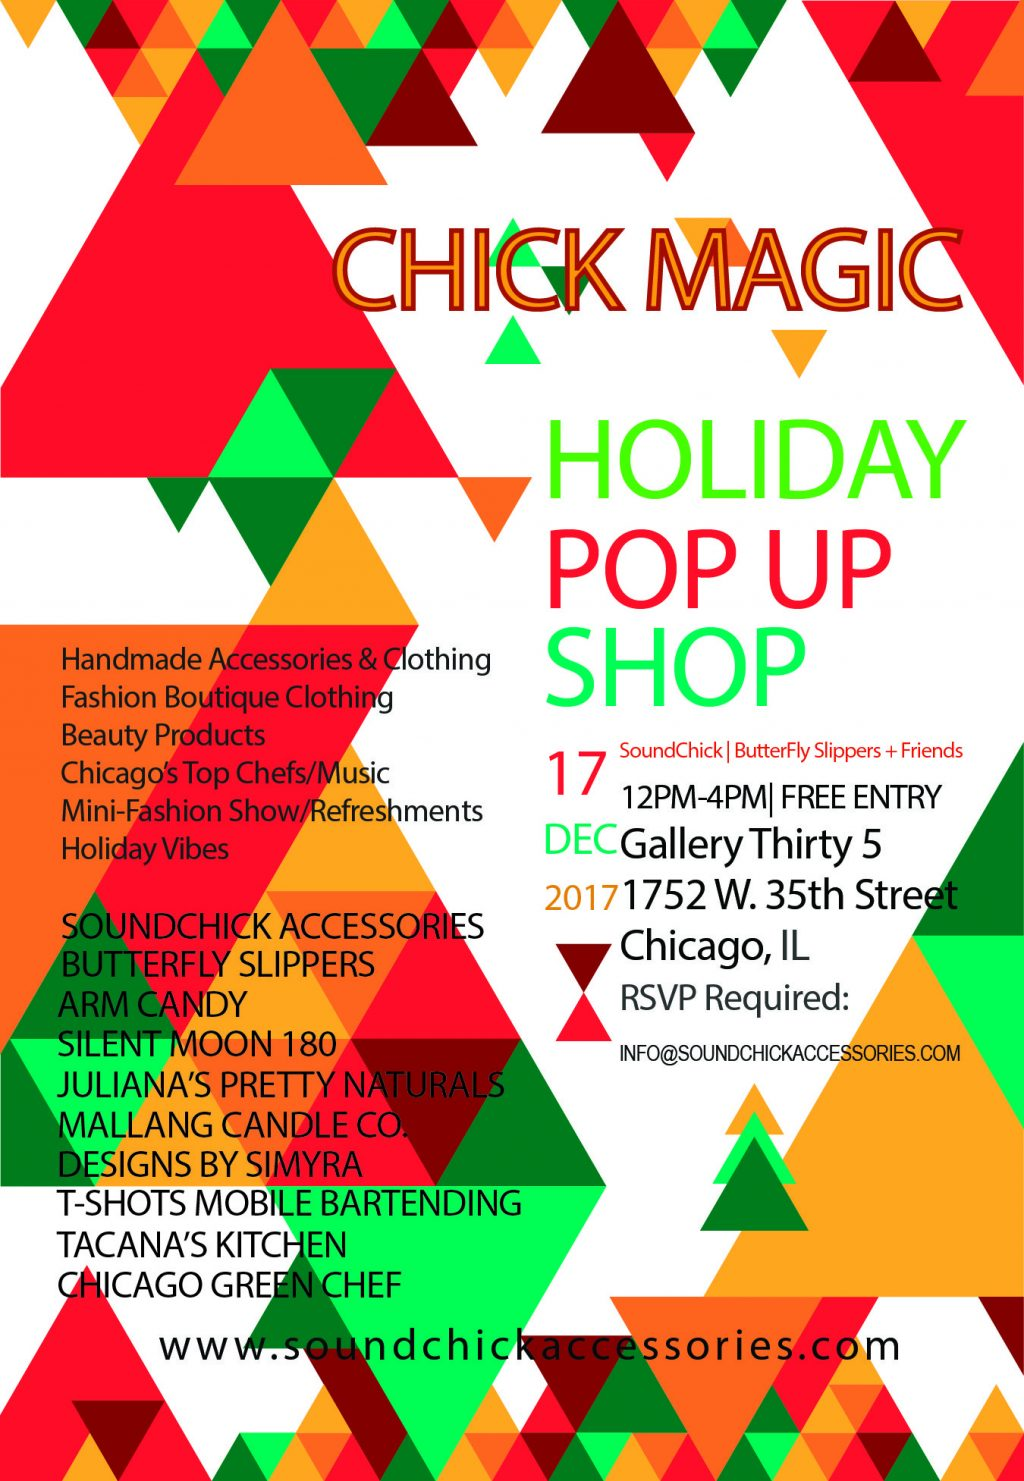 Chick Magic Holiday Pop Up Shop